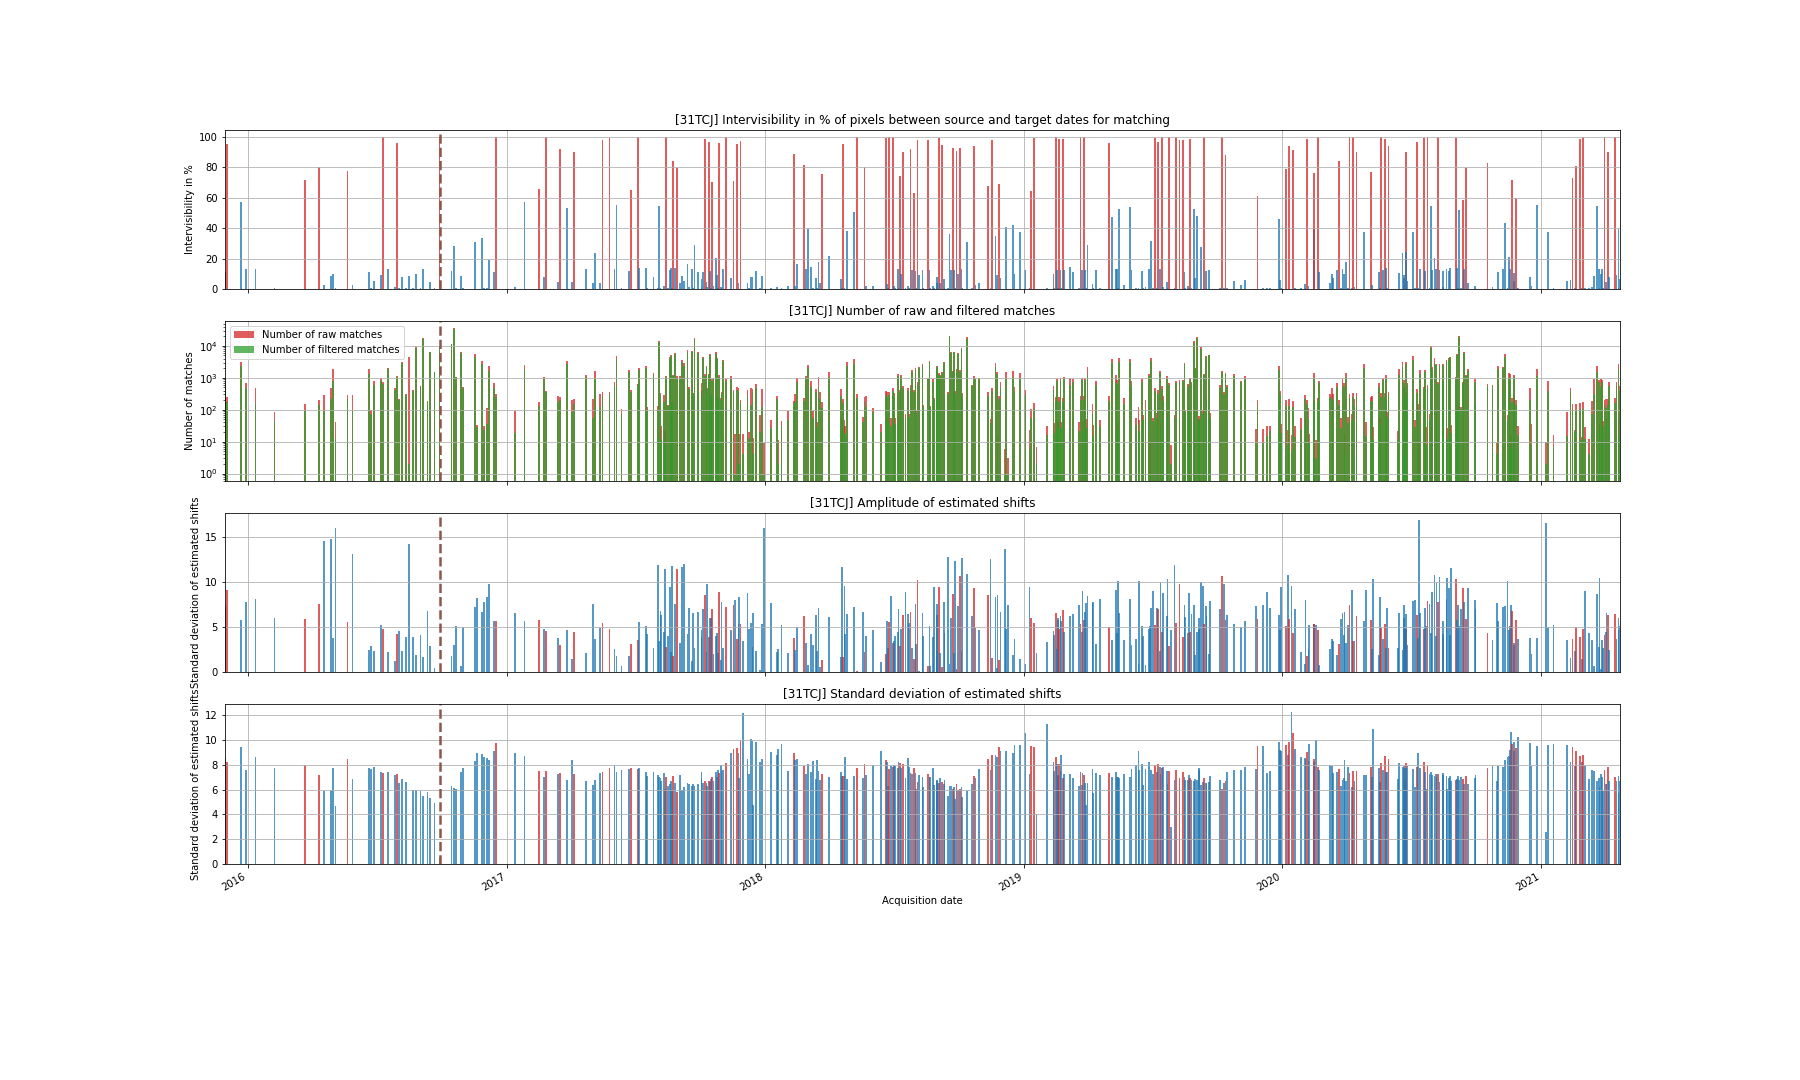 Matching performances for the full archive of the 31TCJ tile.